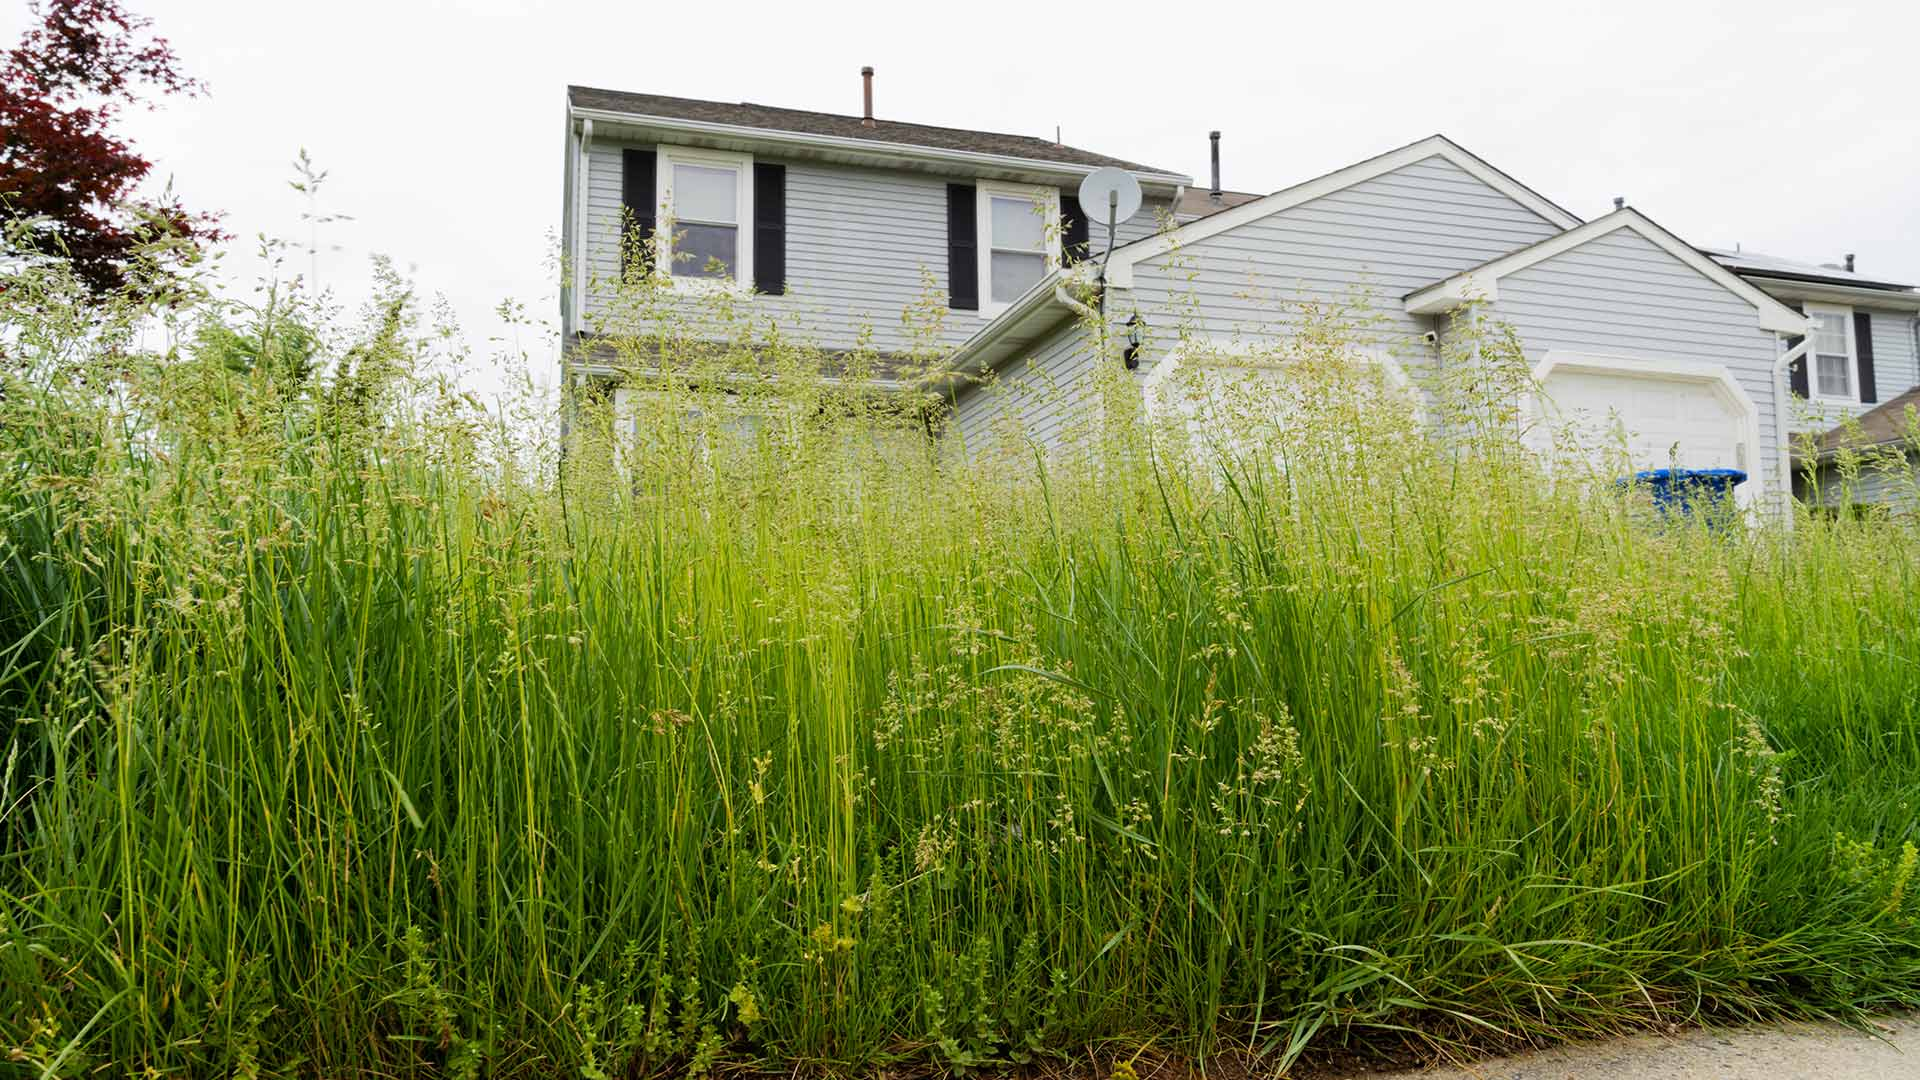 Residential home lawn overgrown with tall grass in Ada, MI.